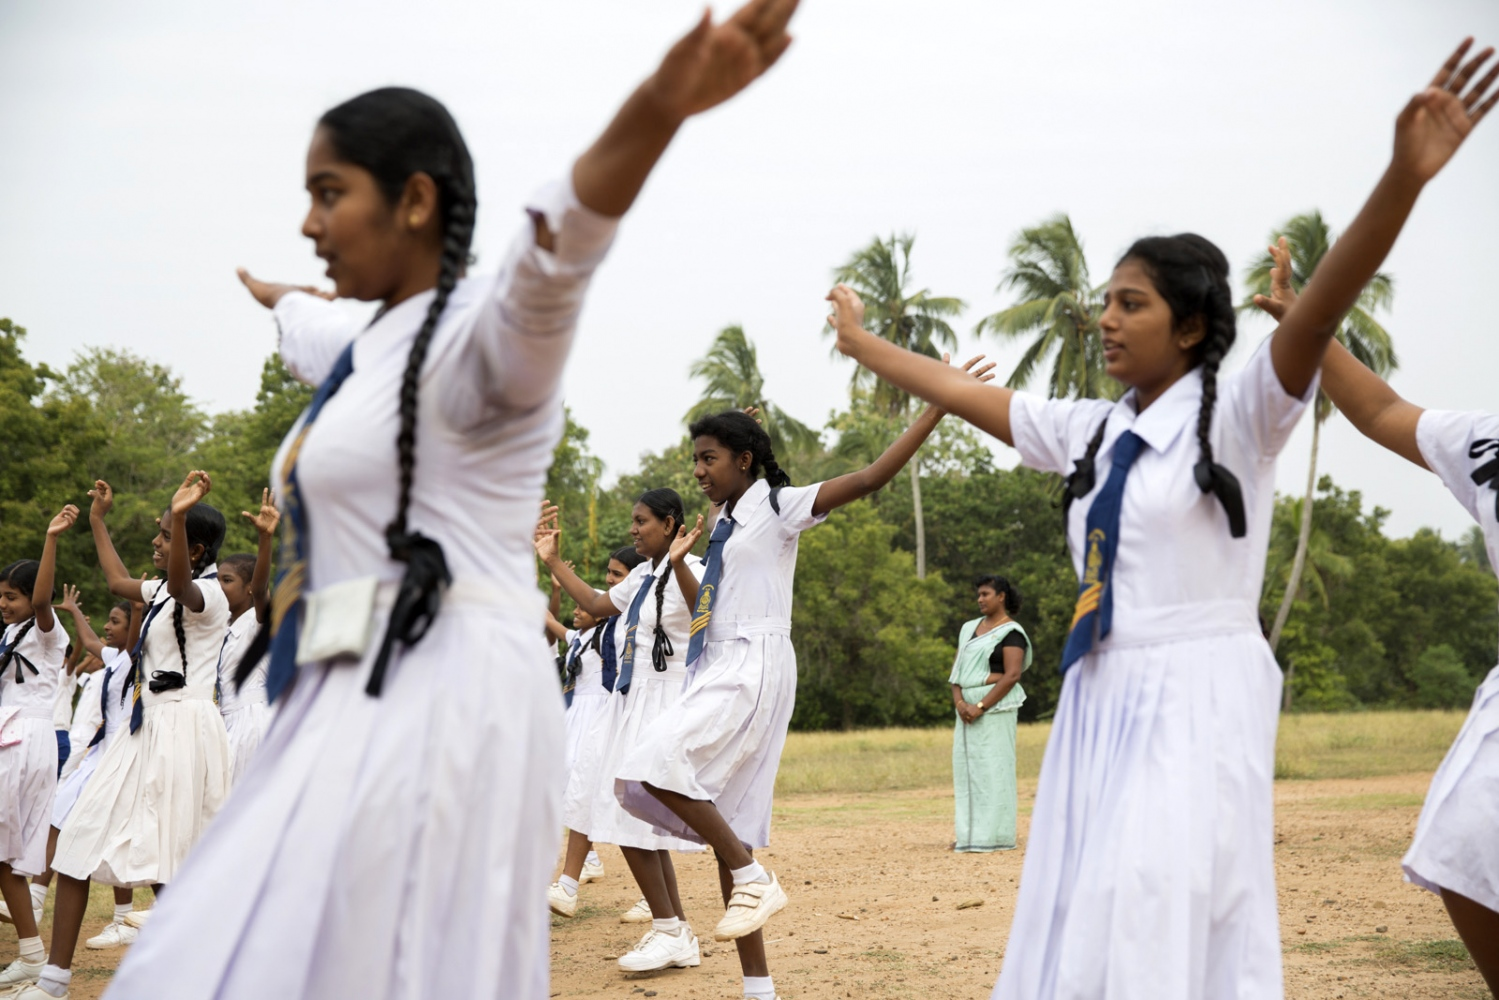 Afro-Sri Lankan Olivia Alexander, 14, takes part in daily morning exercises at Sirambadiya school.